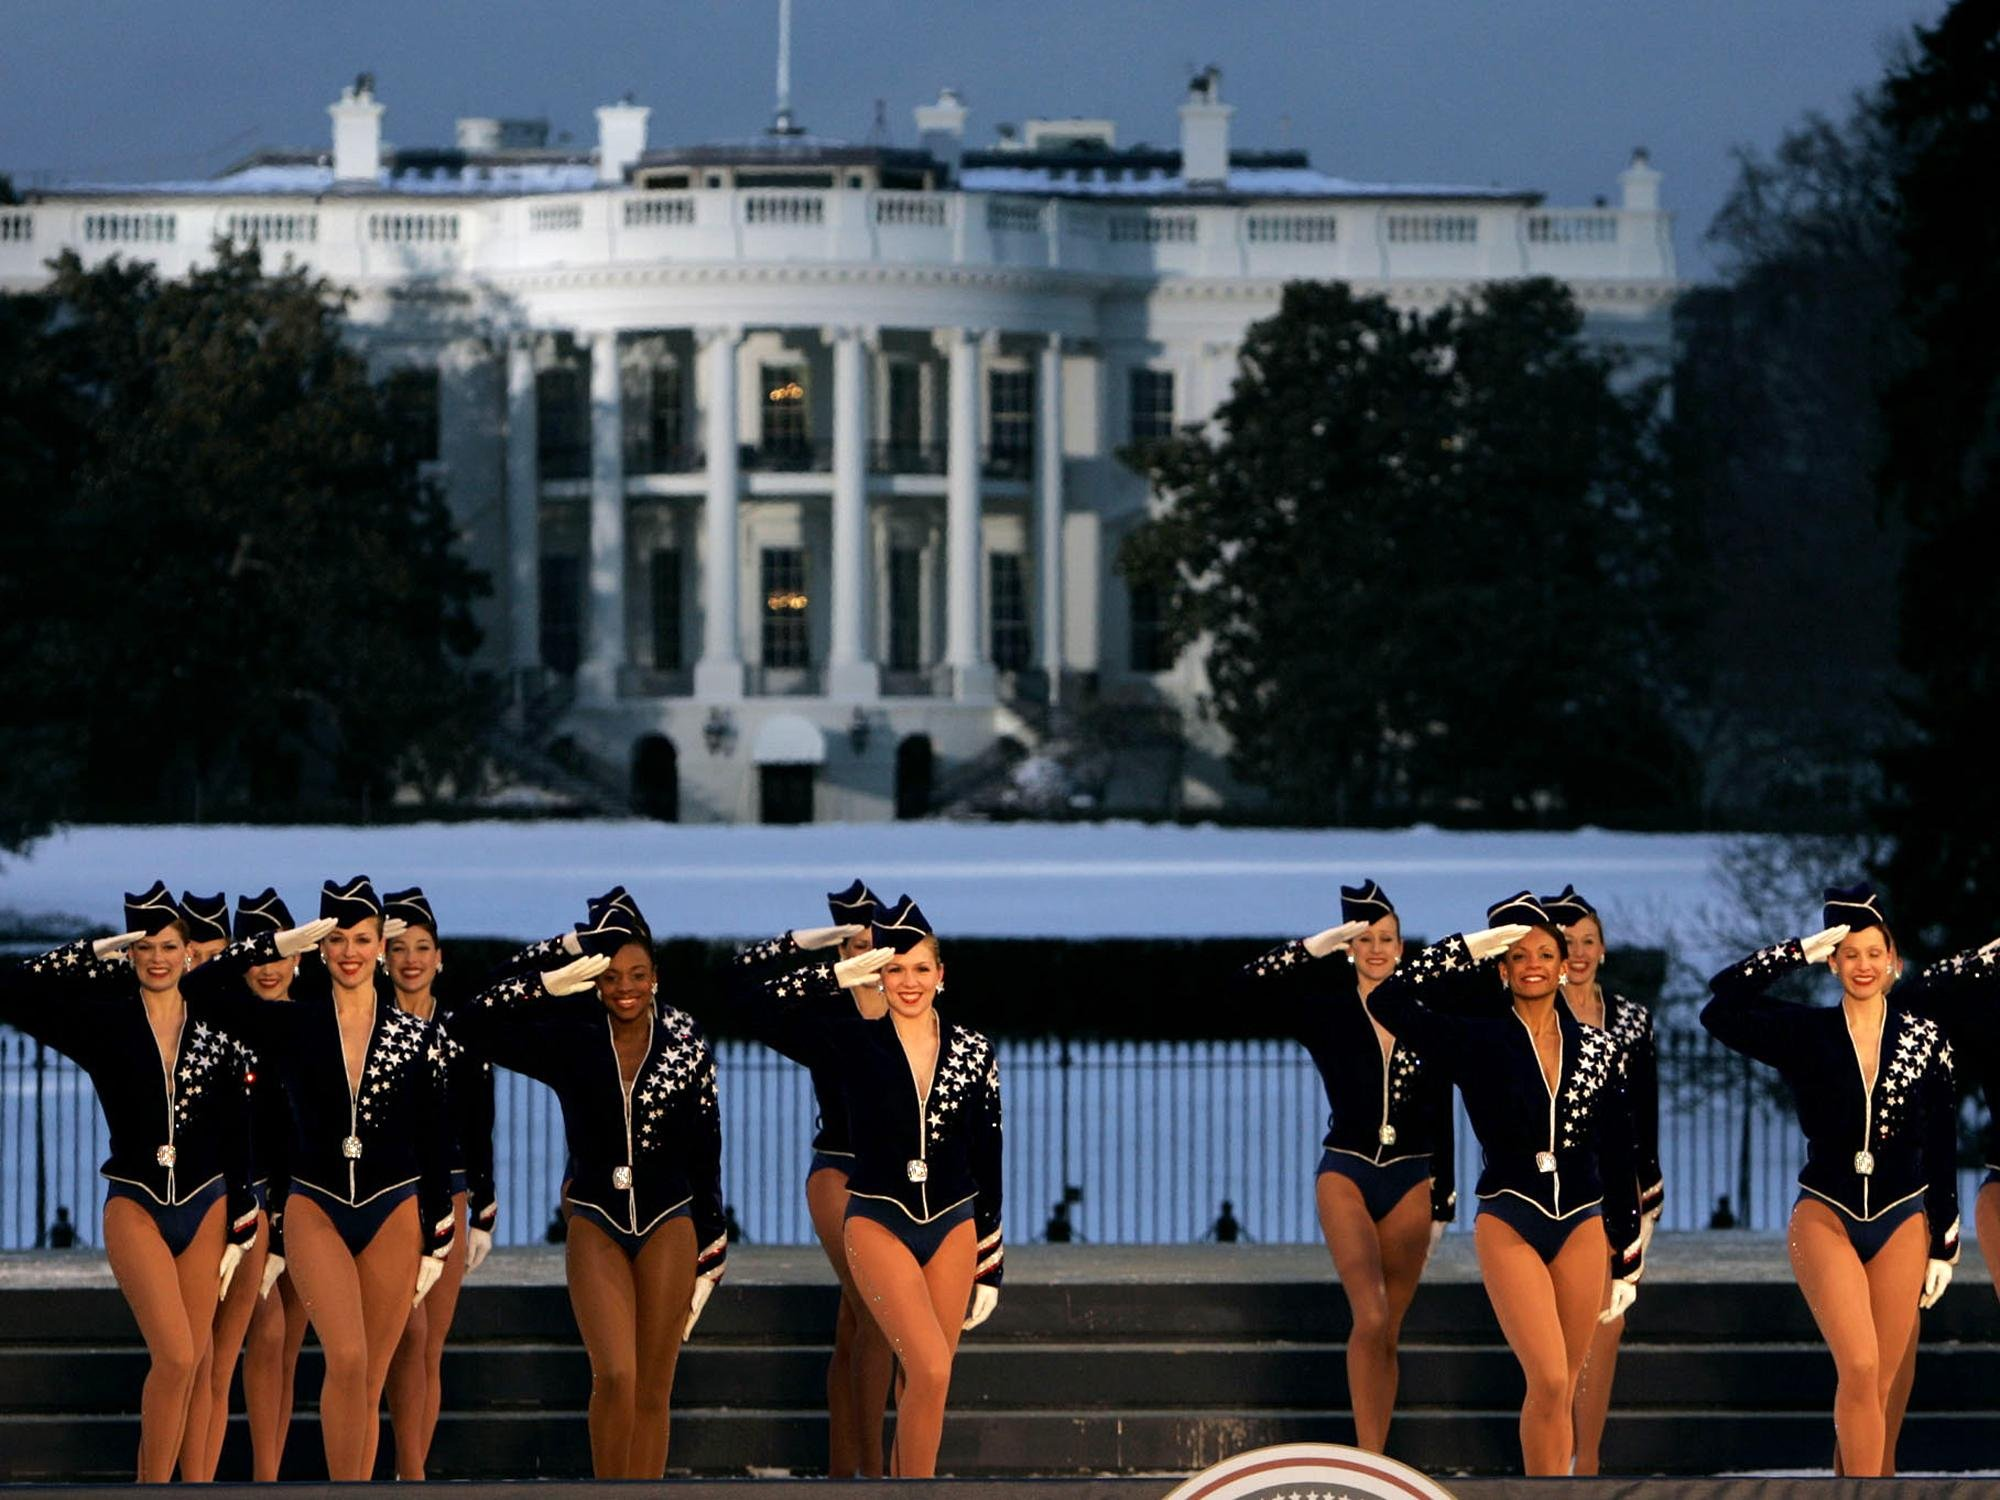 The Rockettes perform during Freedom Concert on the Ellipse, Washington DC, photo